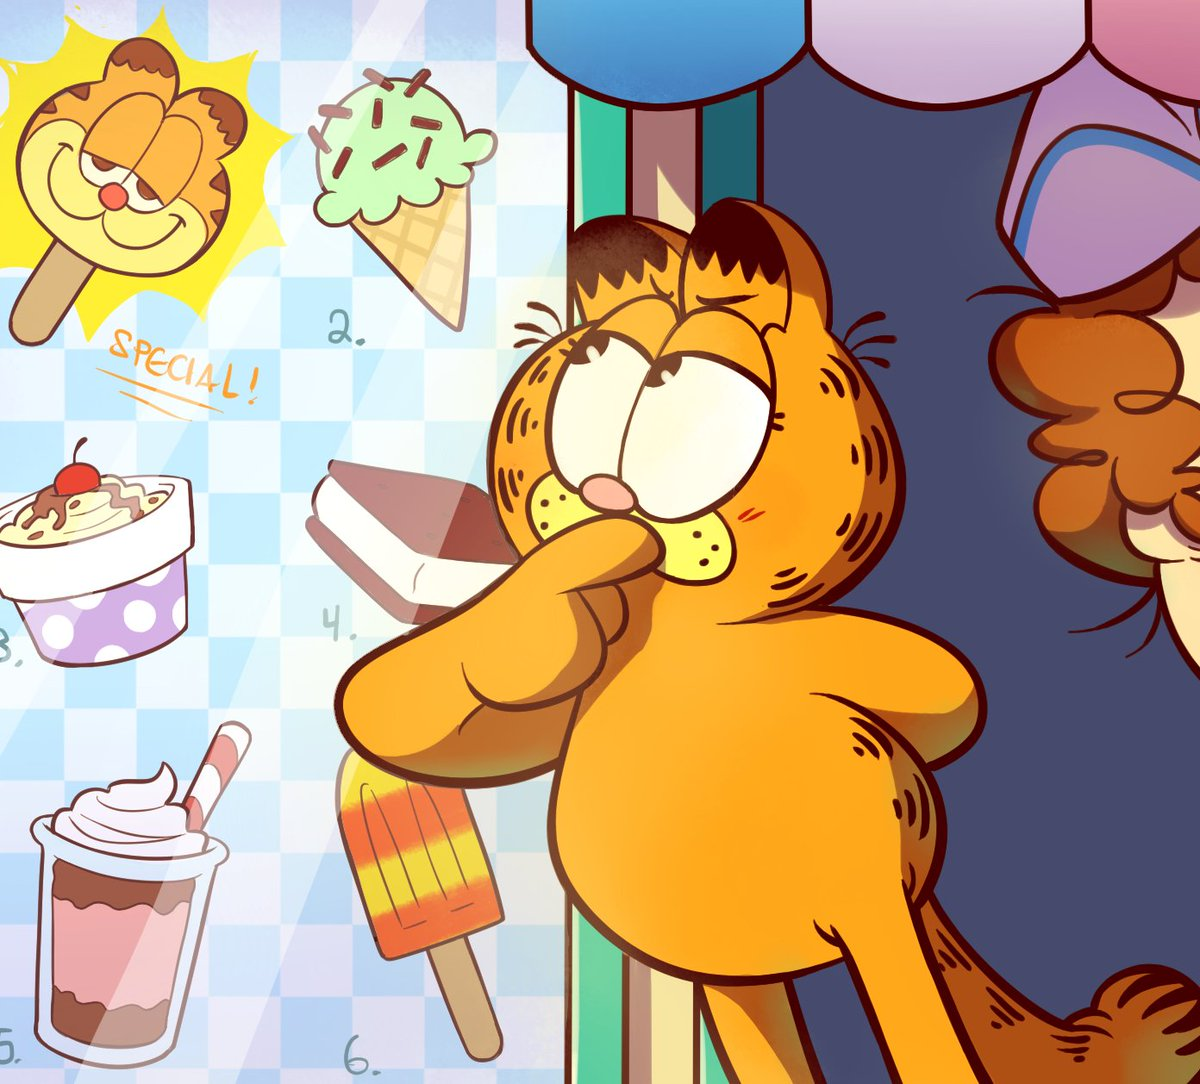 Ah Ah Ah Ah Mel Vampire Month On Twitter Lrt Heyy Everyone If You Re A Garfield Fan Or Just Like Cute Cartoony Art W Good Vibes Pls Go Check Out This Garfield